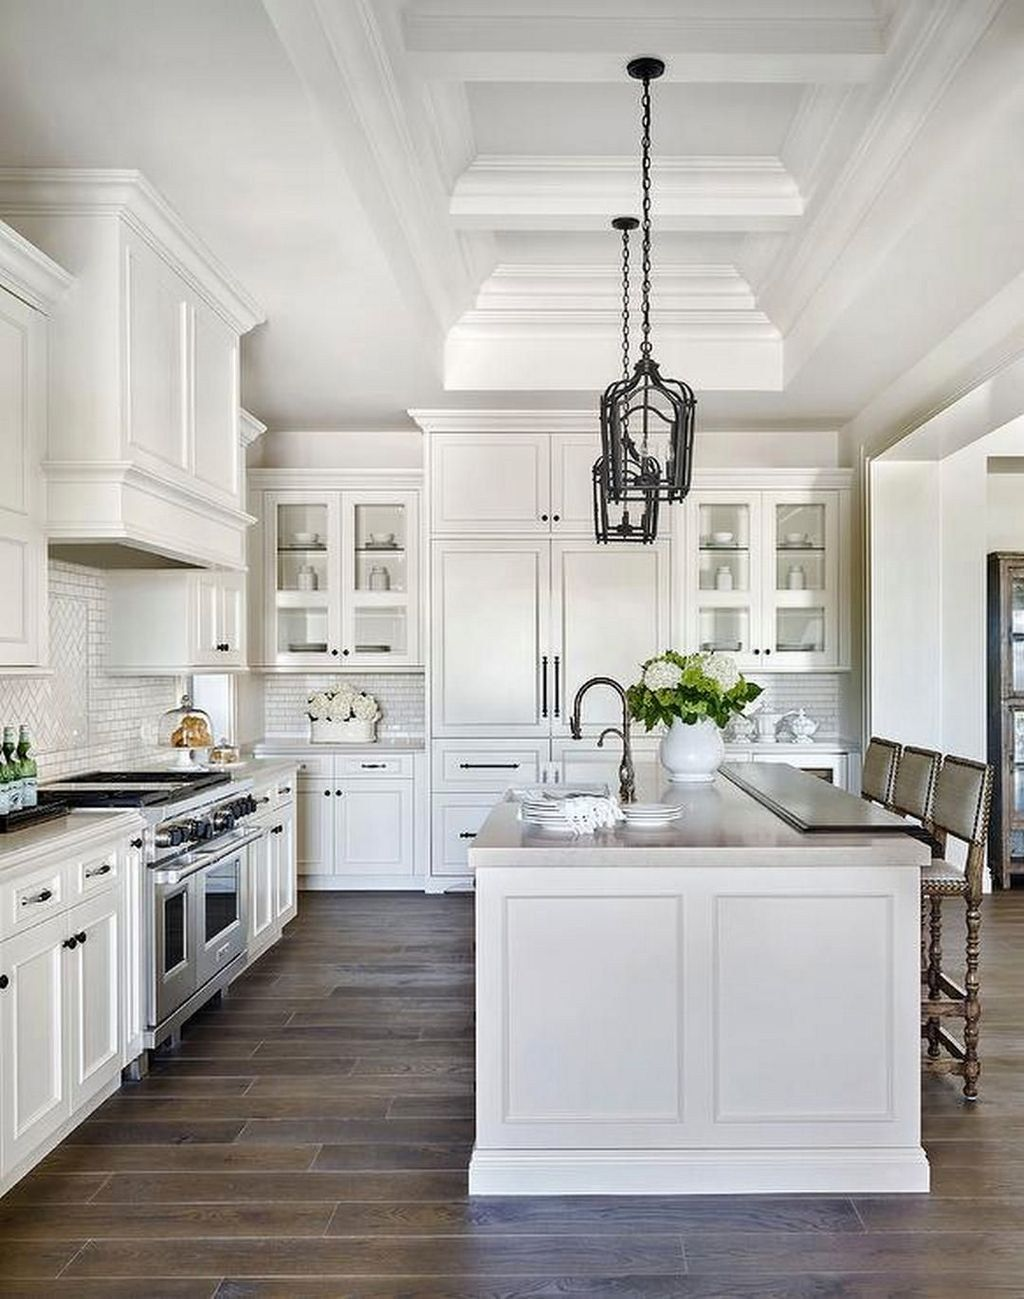 34 Luxury Farmhouse Kitchen Design Ideas To Bring Modern Look Trendehouse Farmhouse Kitchen Design Gorgeous White Kitchen White Kitchen Design